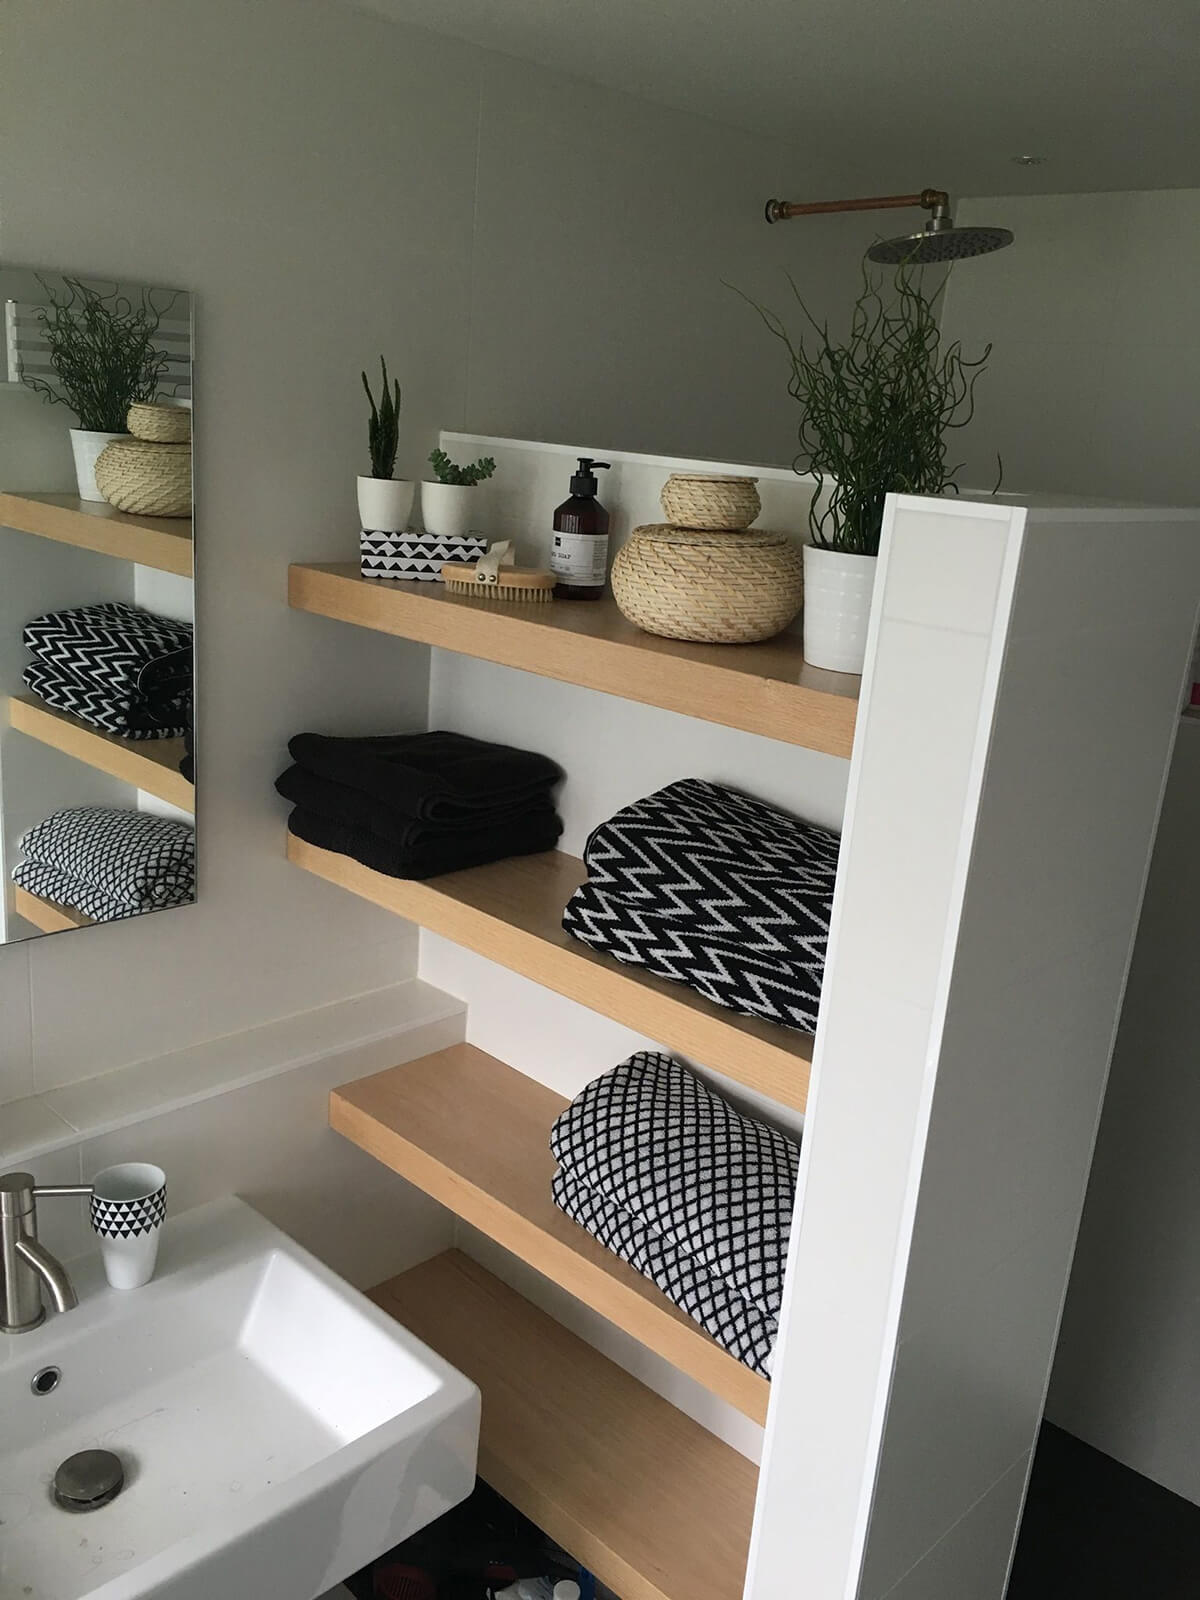 12 Best Built-in Bathroom Shelf and Storage Ideas for 12